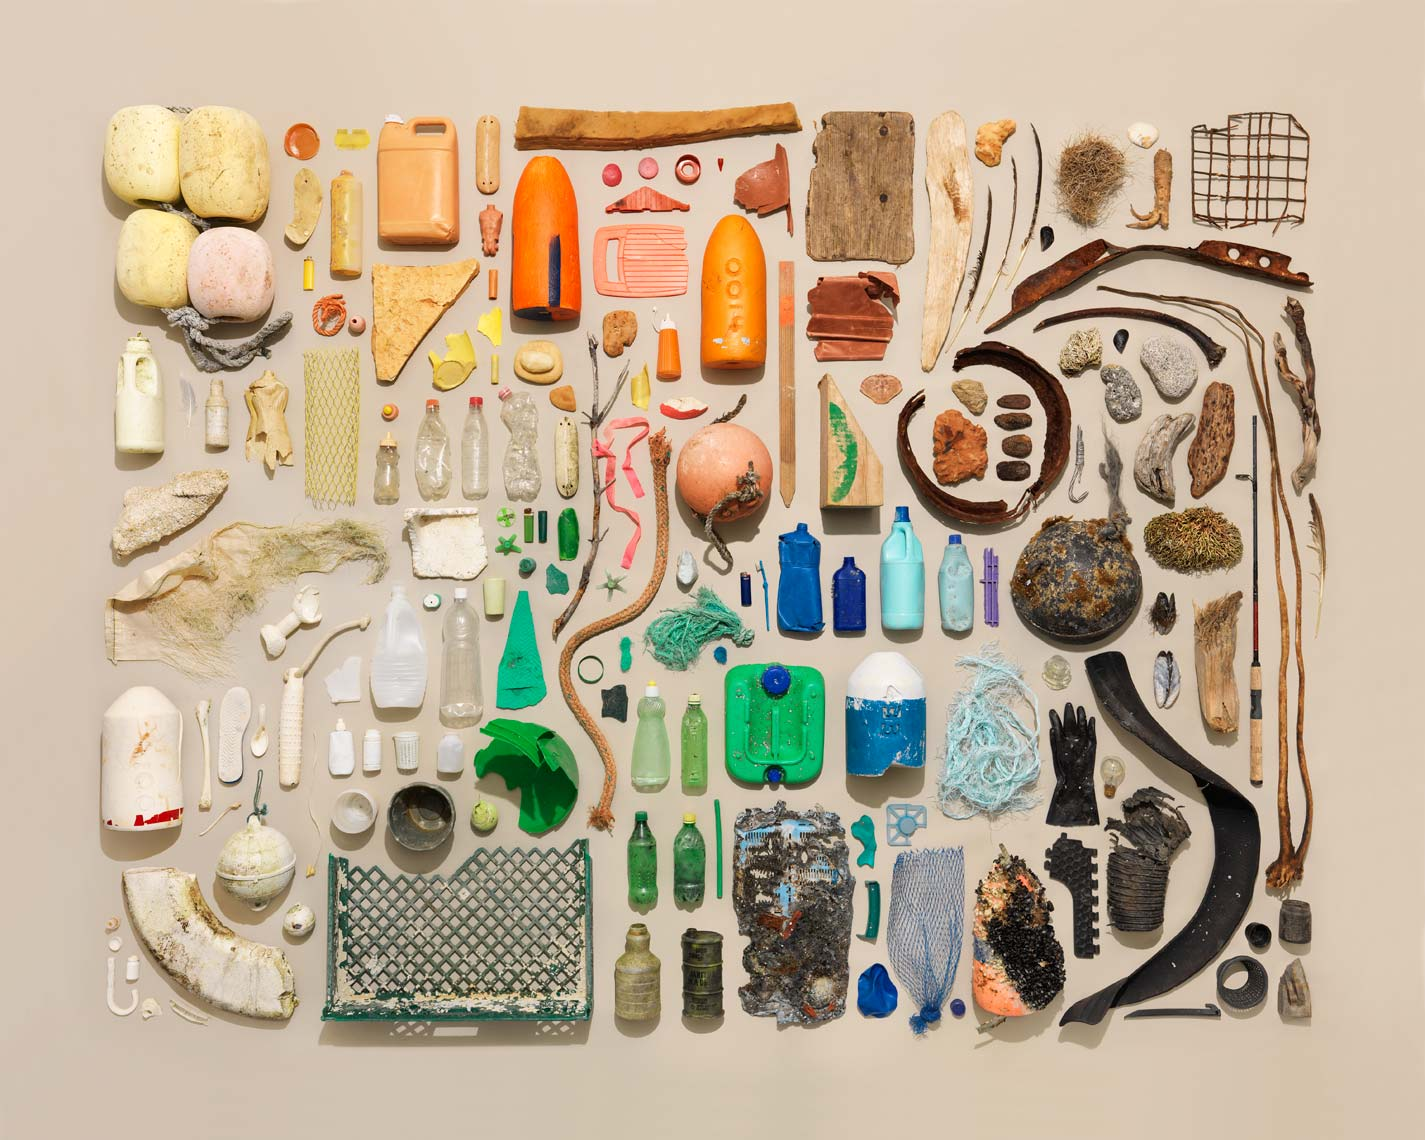 beach garbage organized from dark to light on tan paper